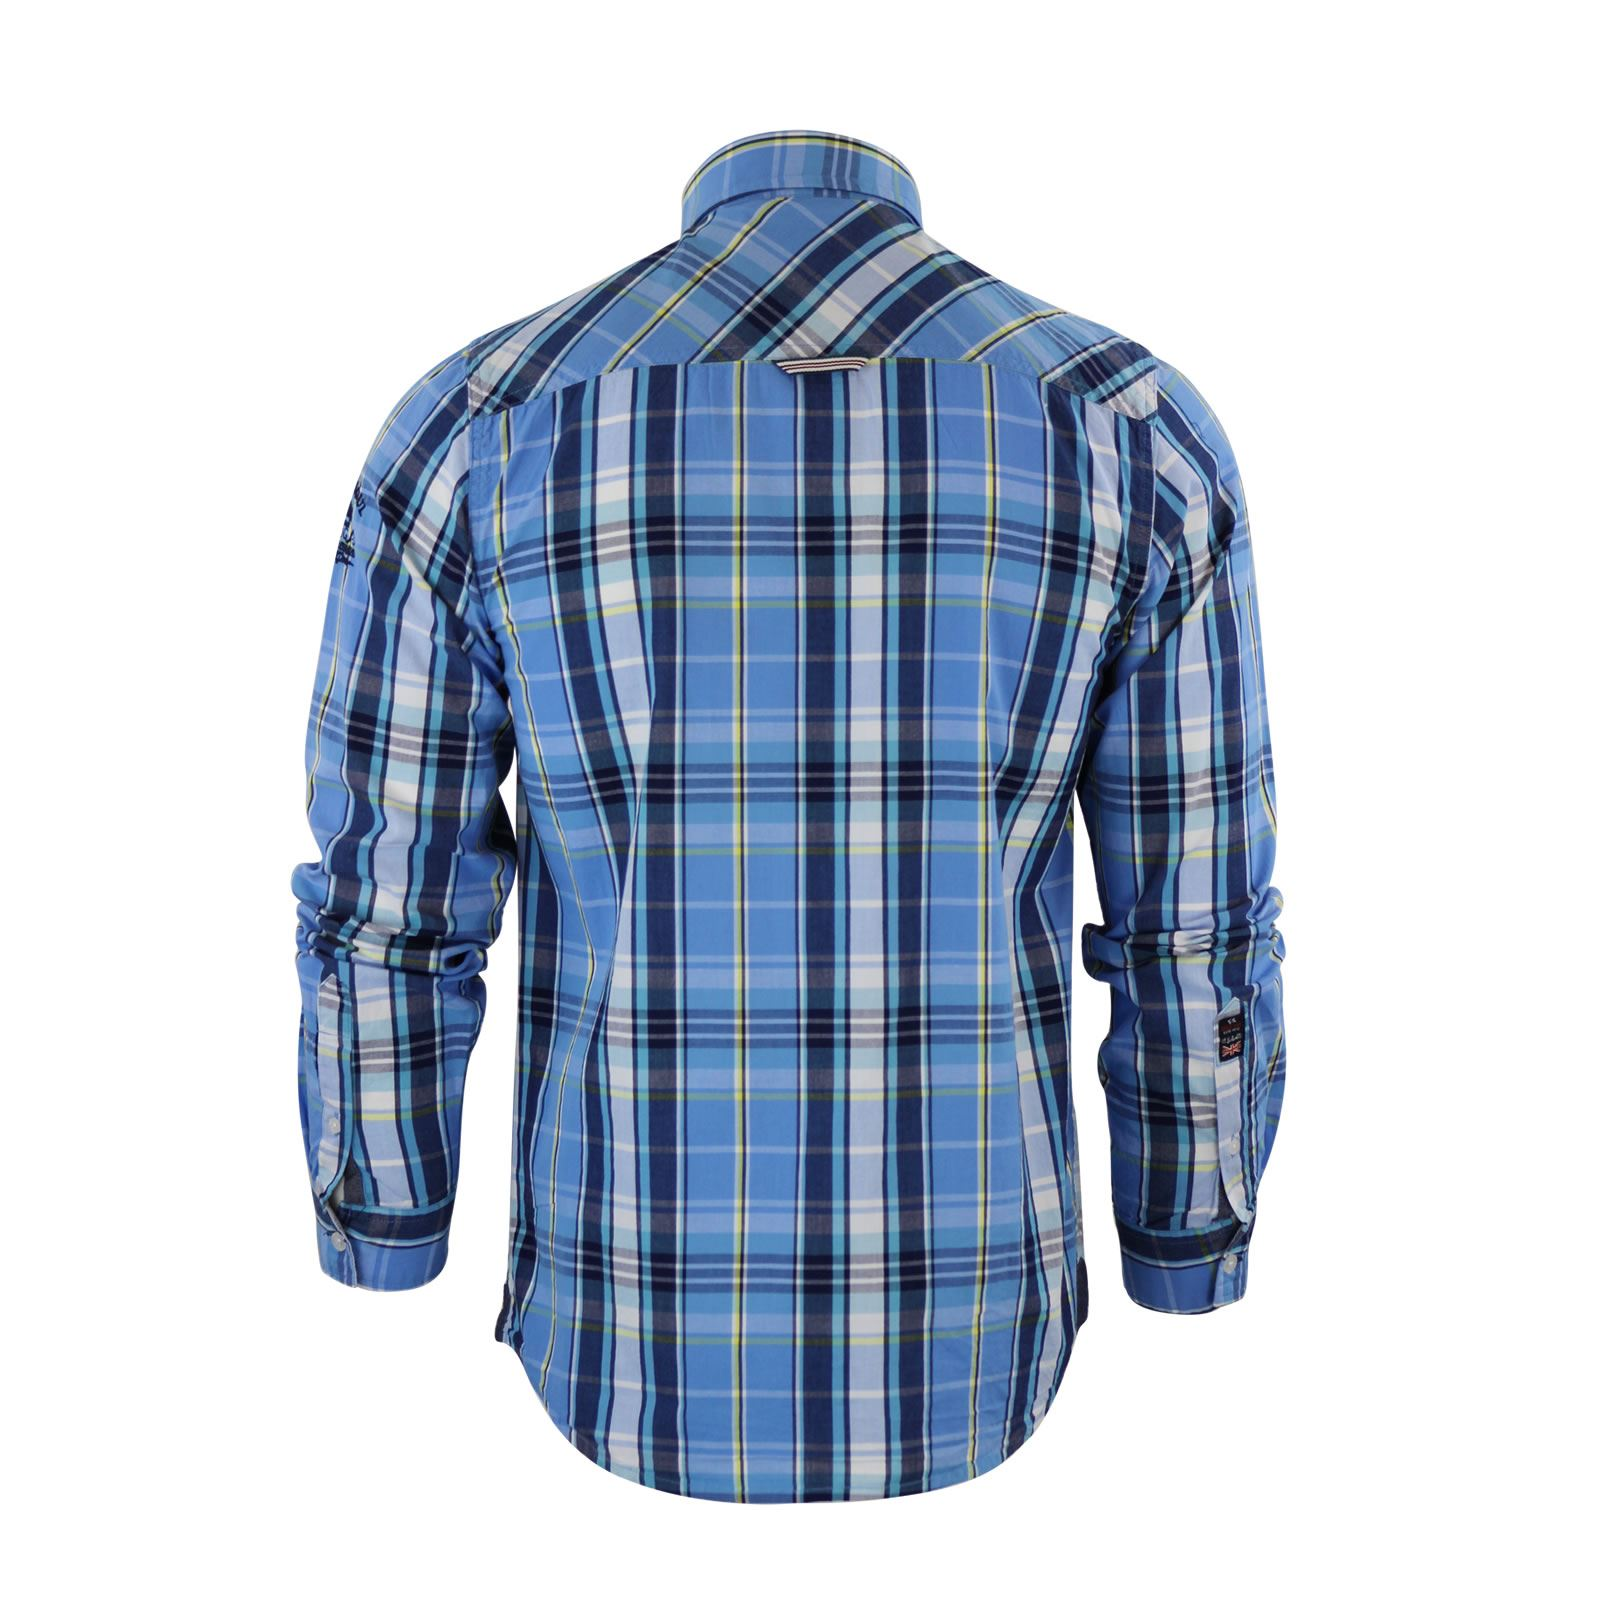 Mens-Check-Shirt-Brave-Soul-Flannel-Brushed-Cotton-Long-Sleeve-Casual-Top thumbnail 54